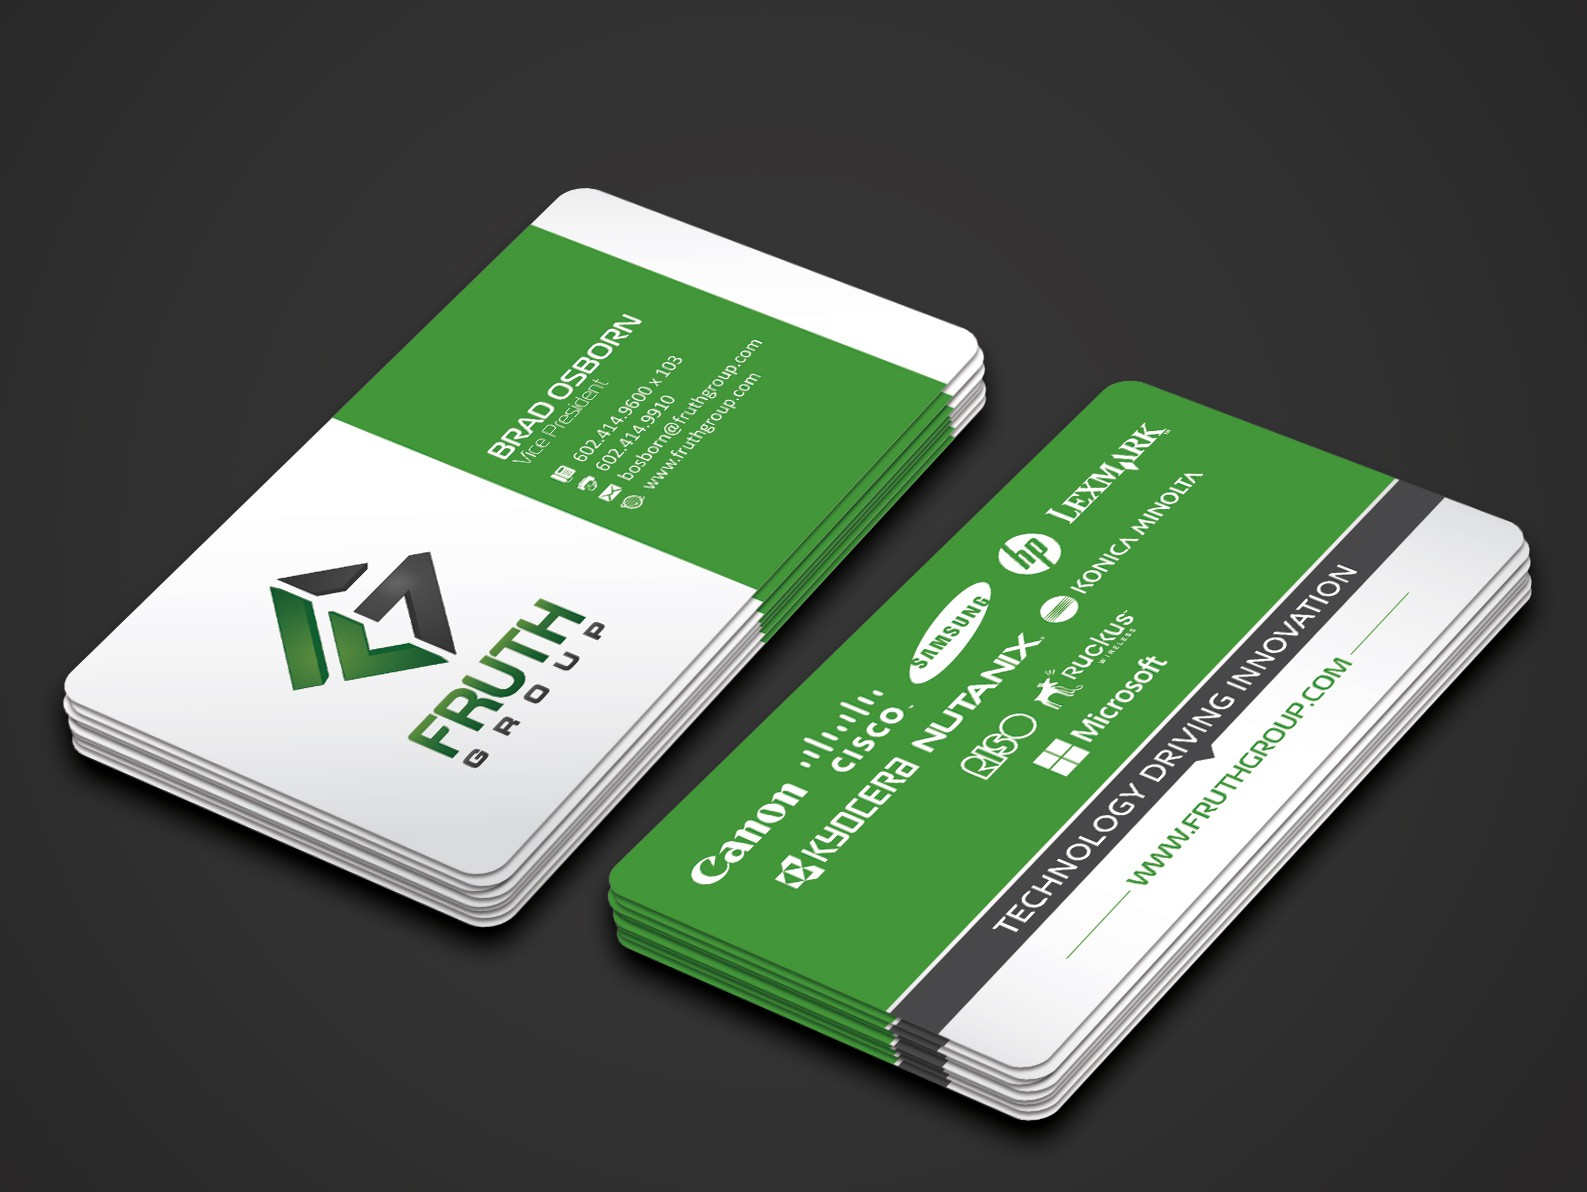 New High Tech Business Cards for High Tech Company